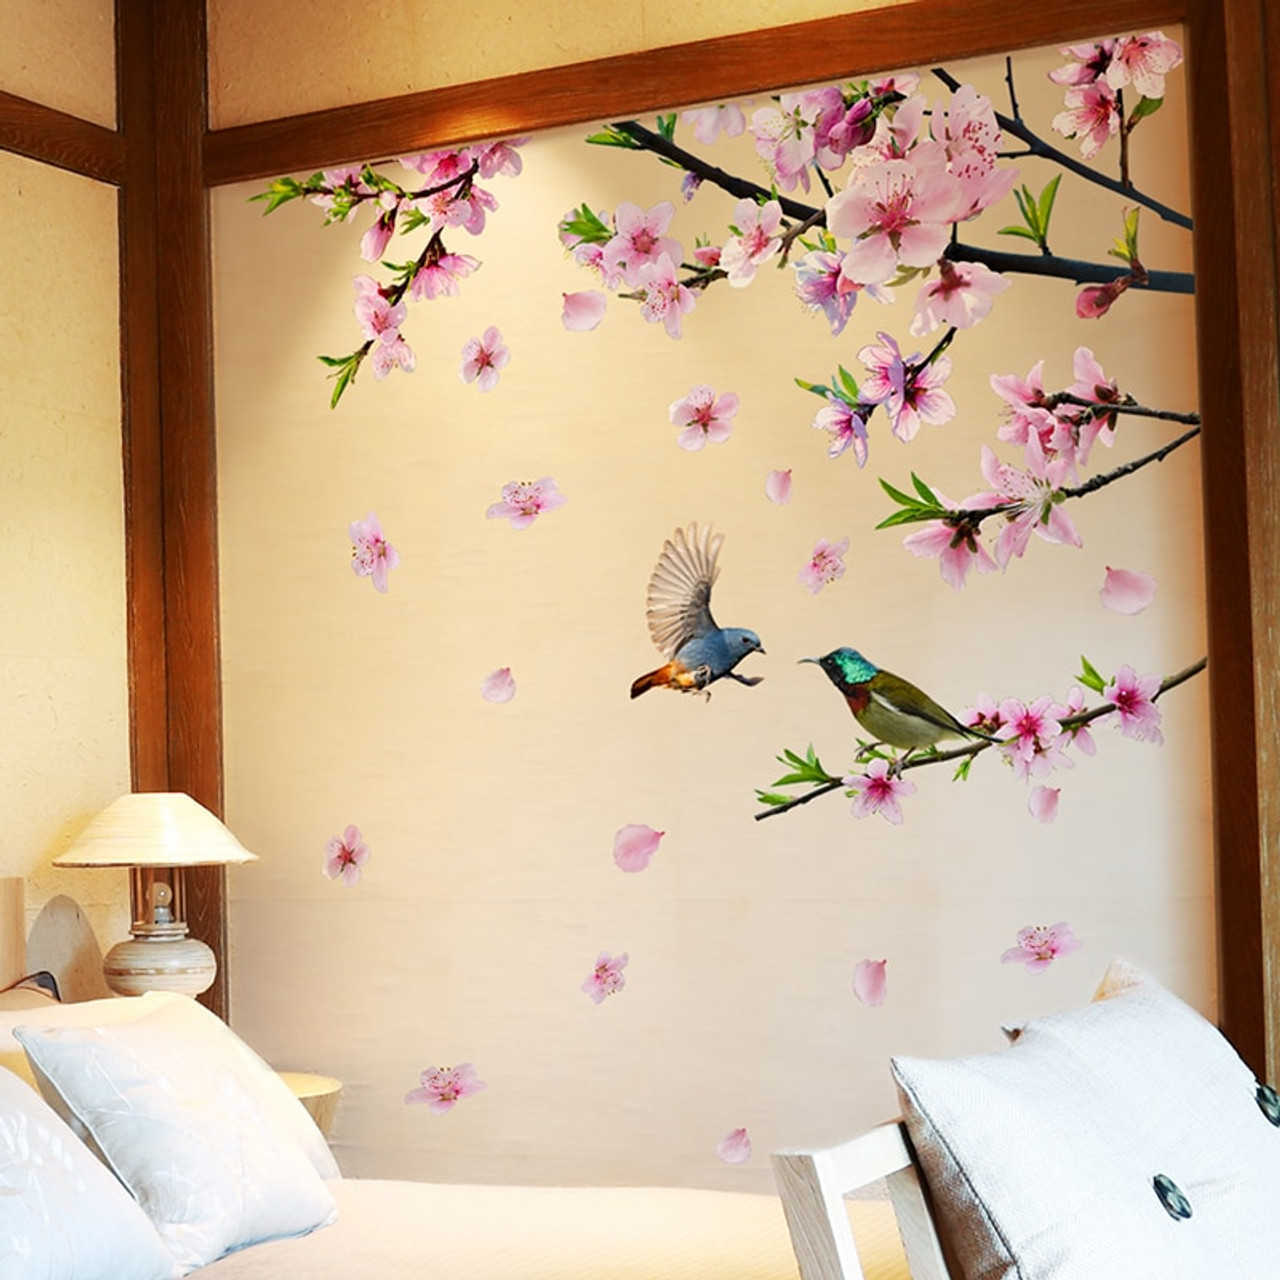 Shijuehezi Peach Blossom Tree Branch Wall Stickers Diy Flowers Birds Wall Decals For House Living Room Bedroom Decoration